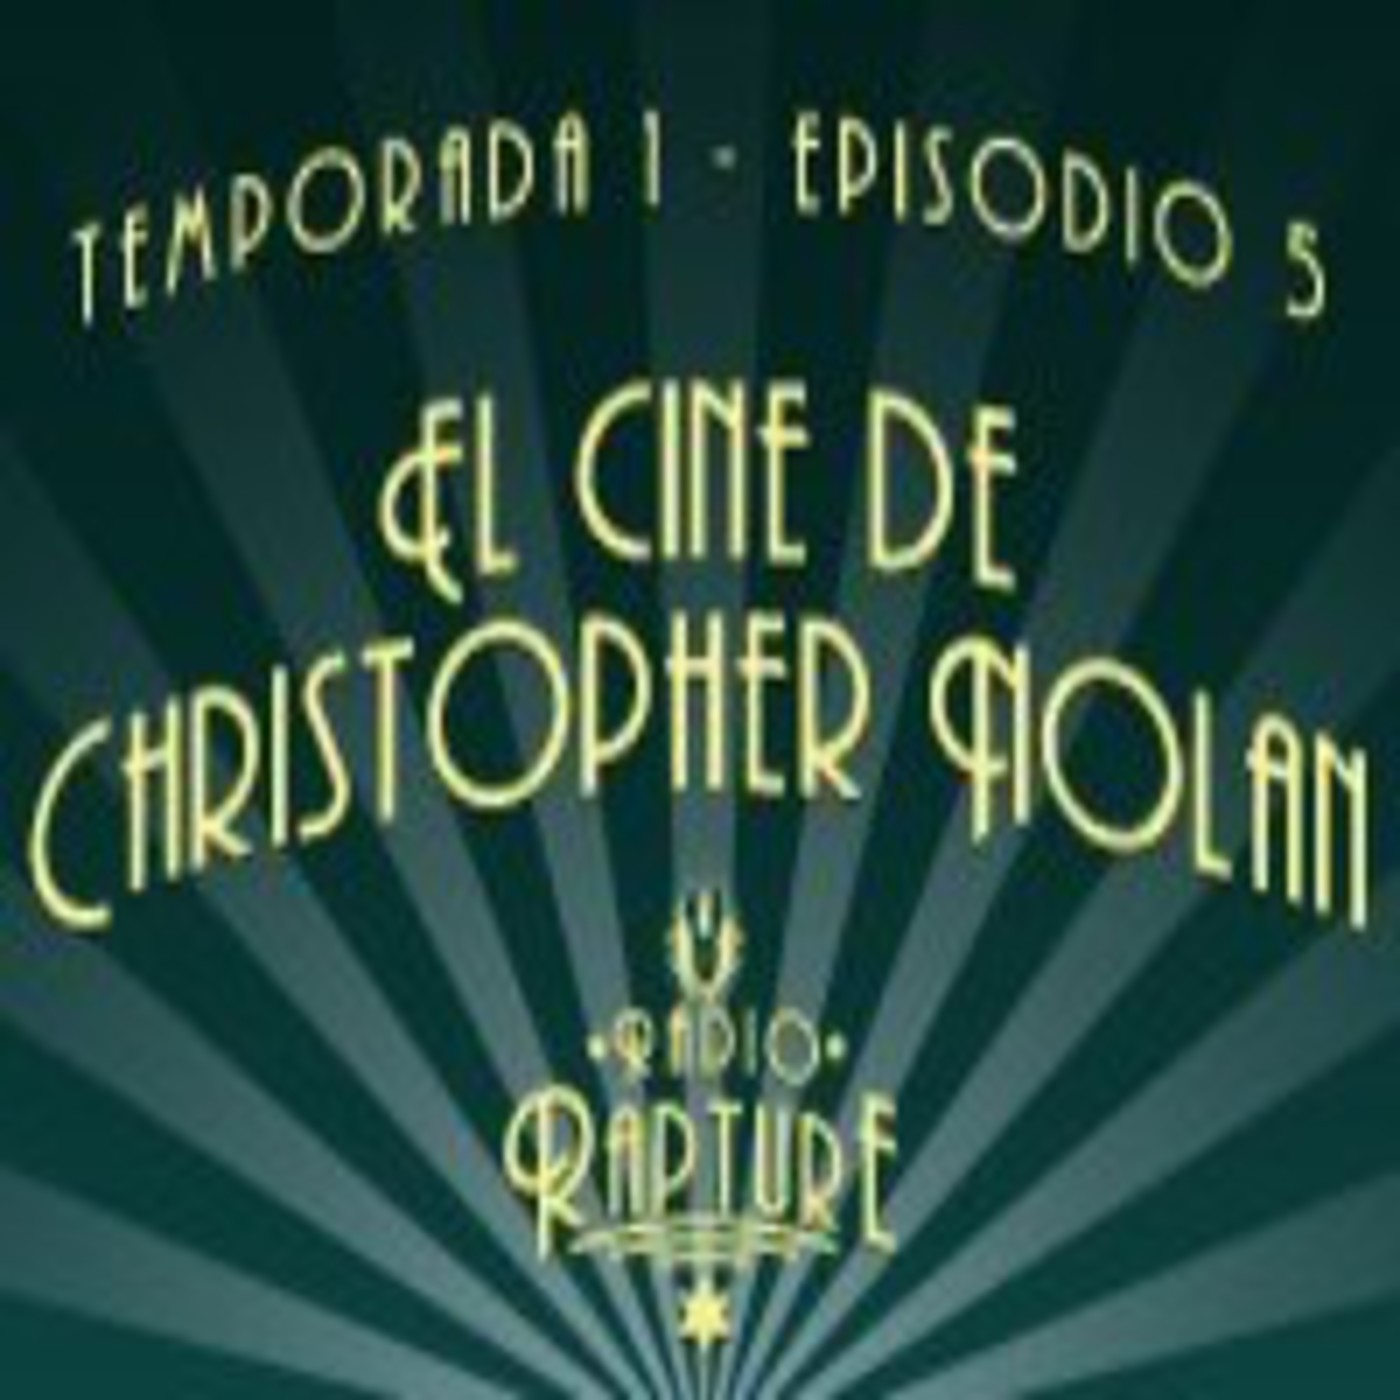 Episodio 1x05: El cine de Christopher Nolan